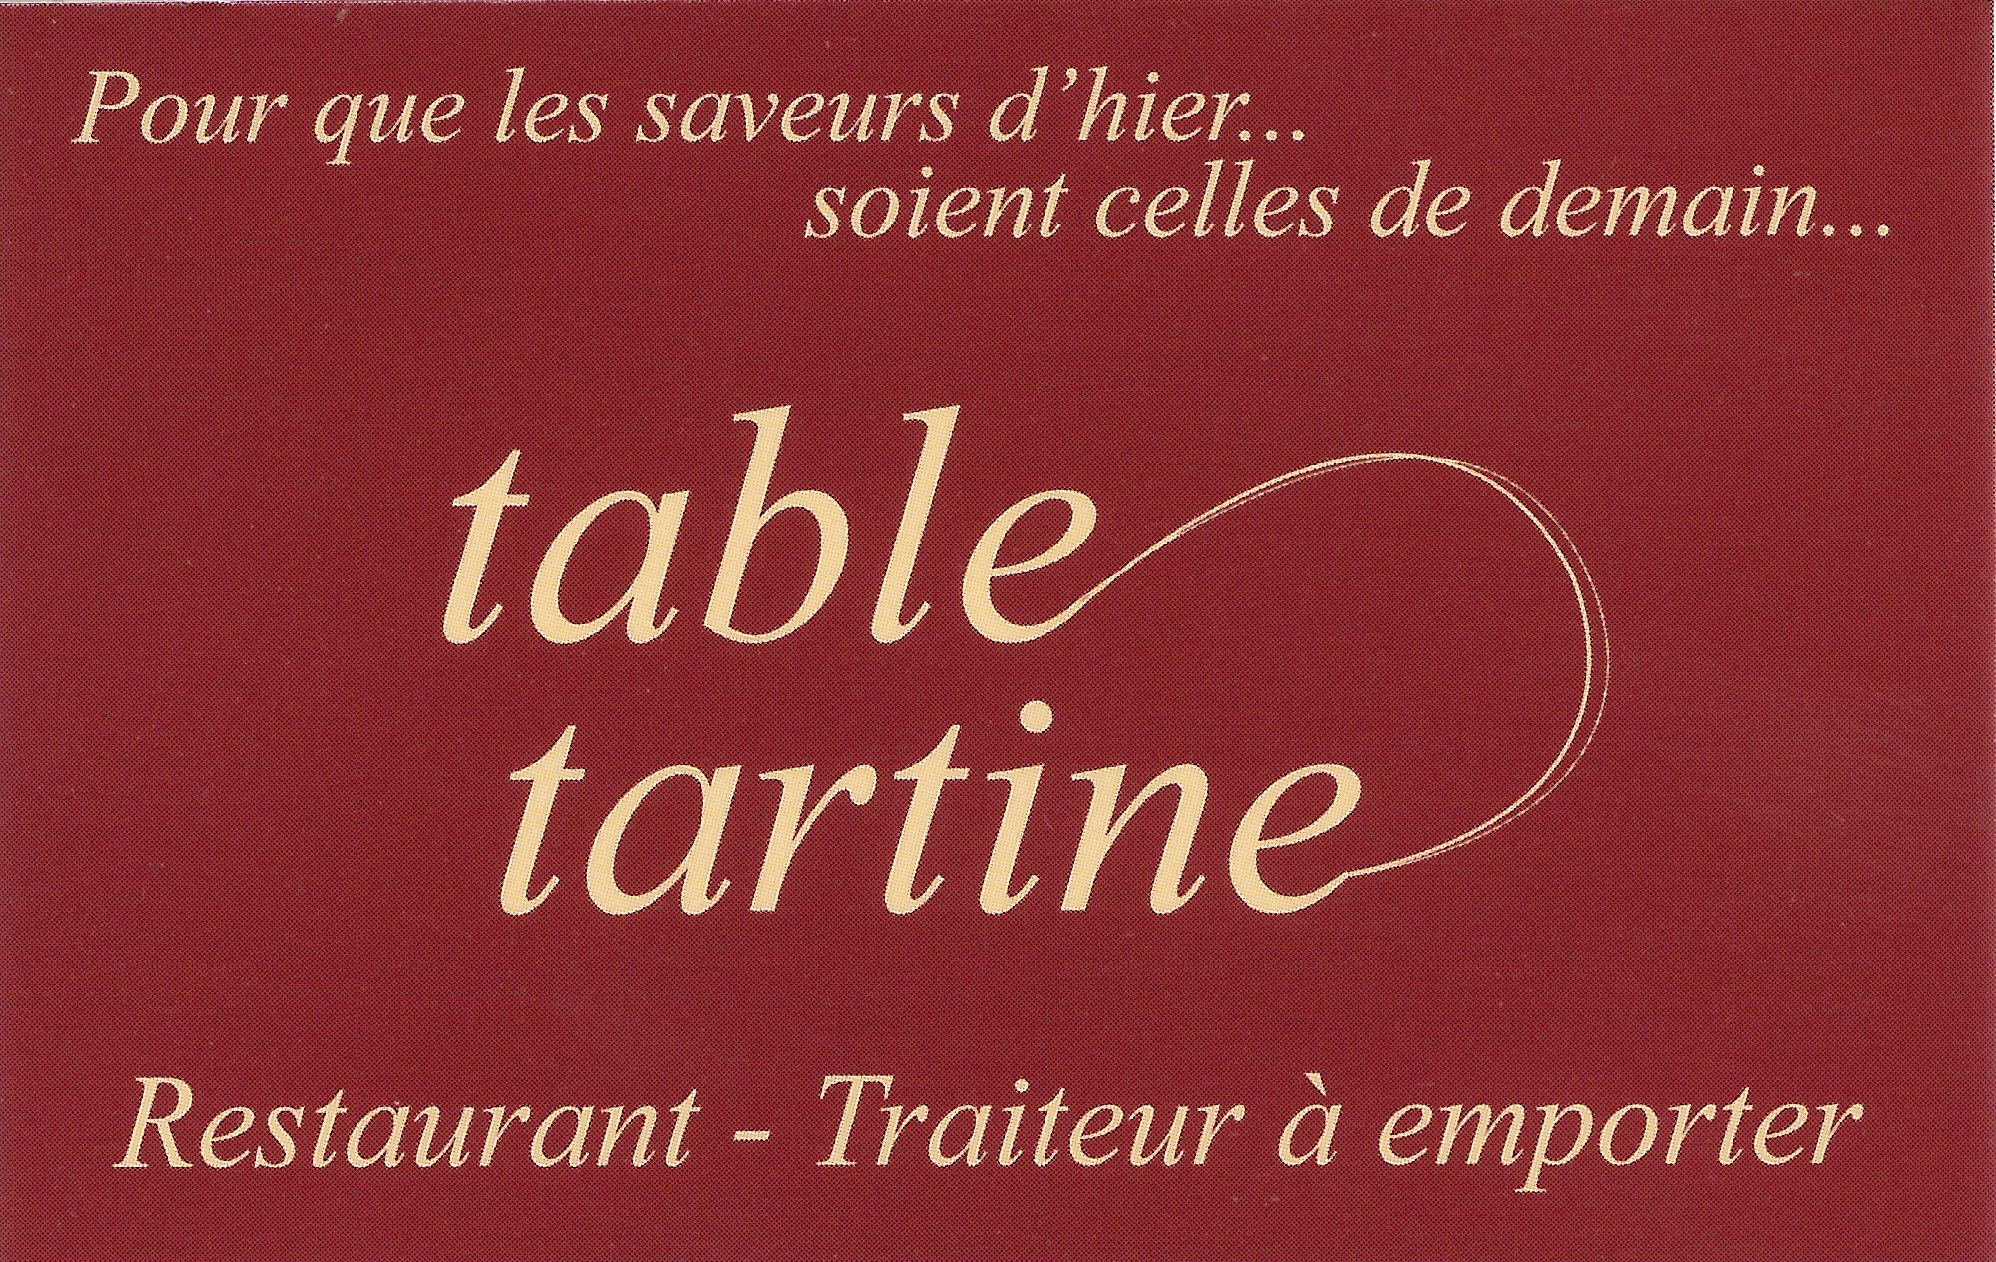 Restaurant table tartine